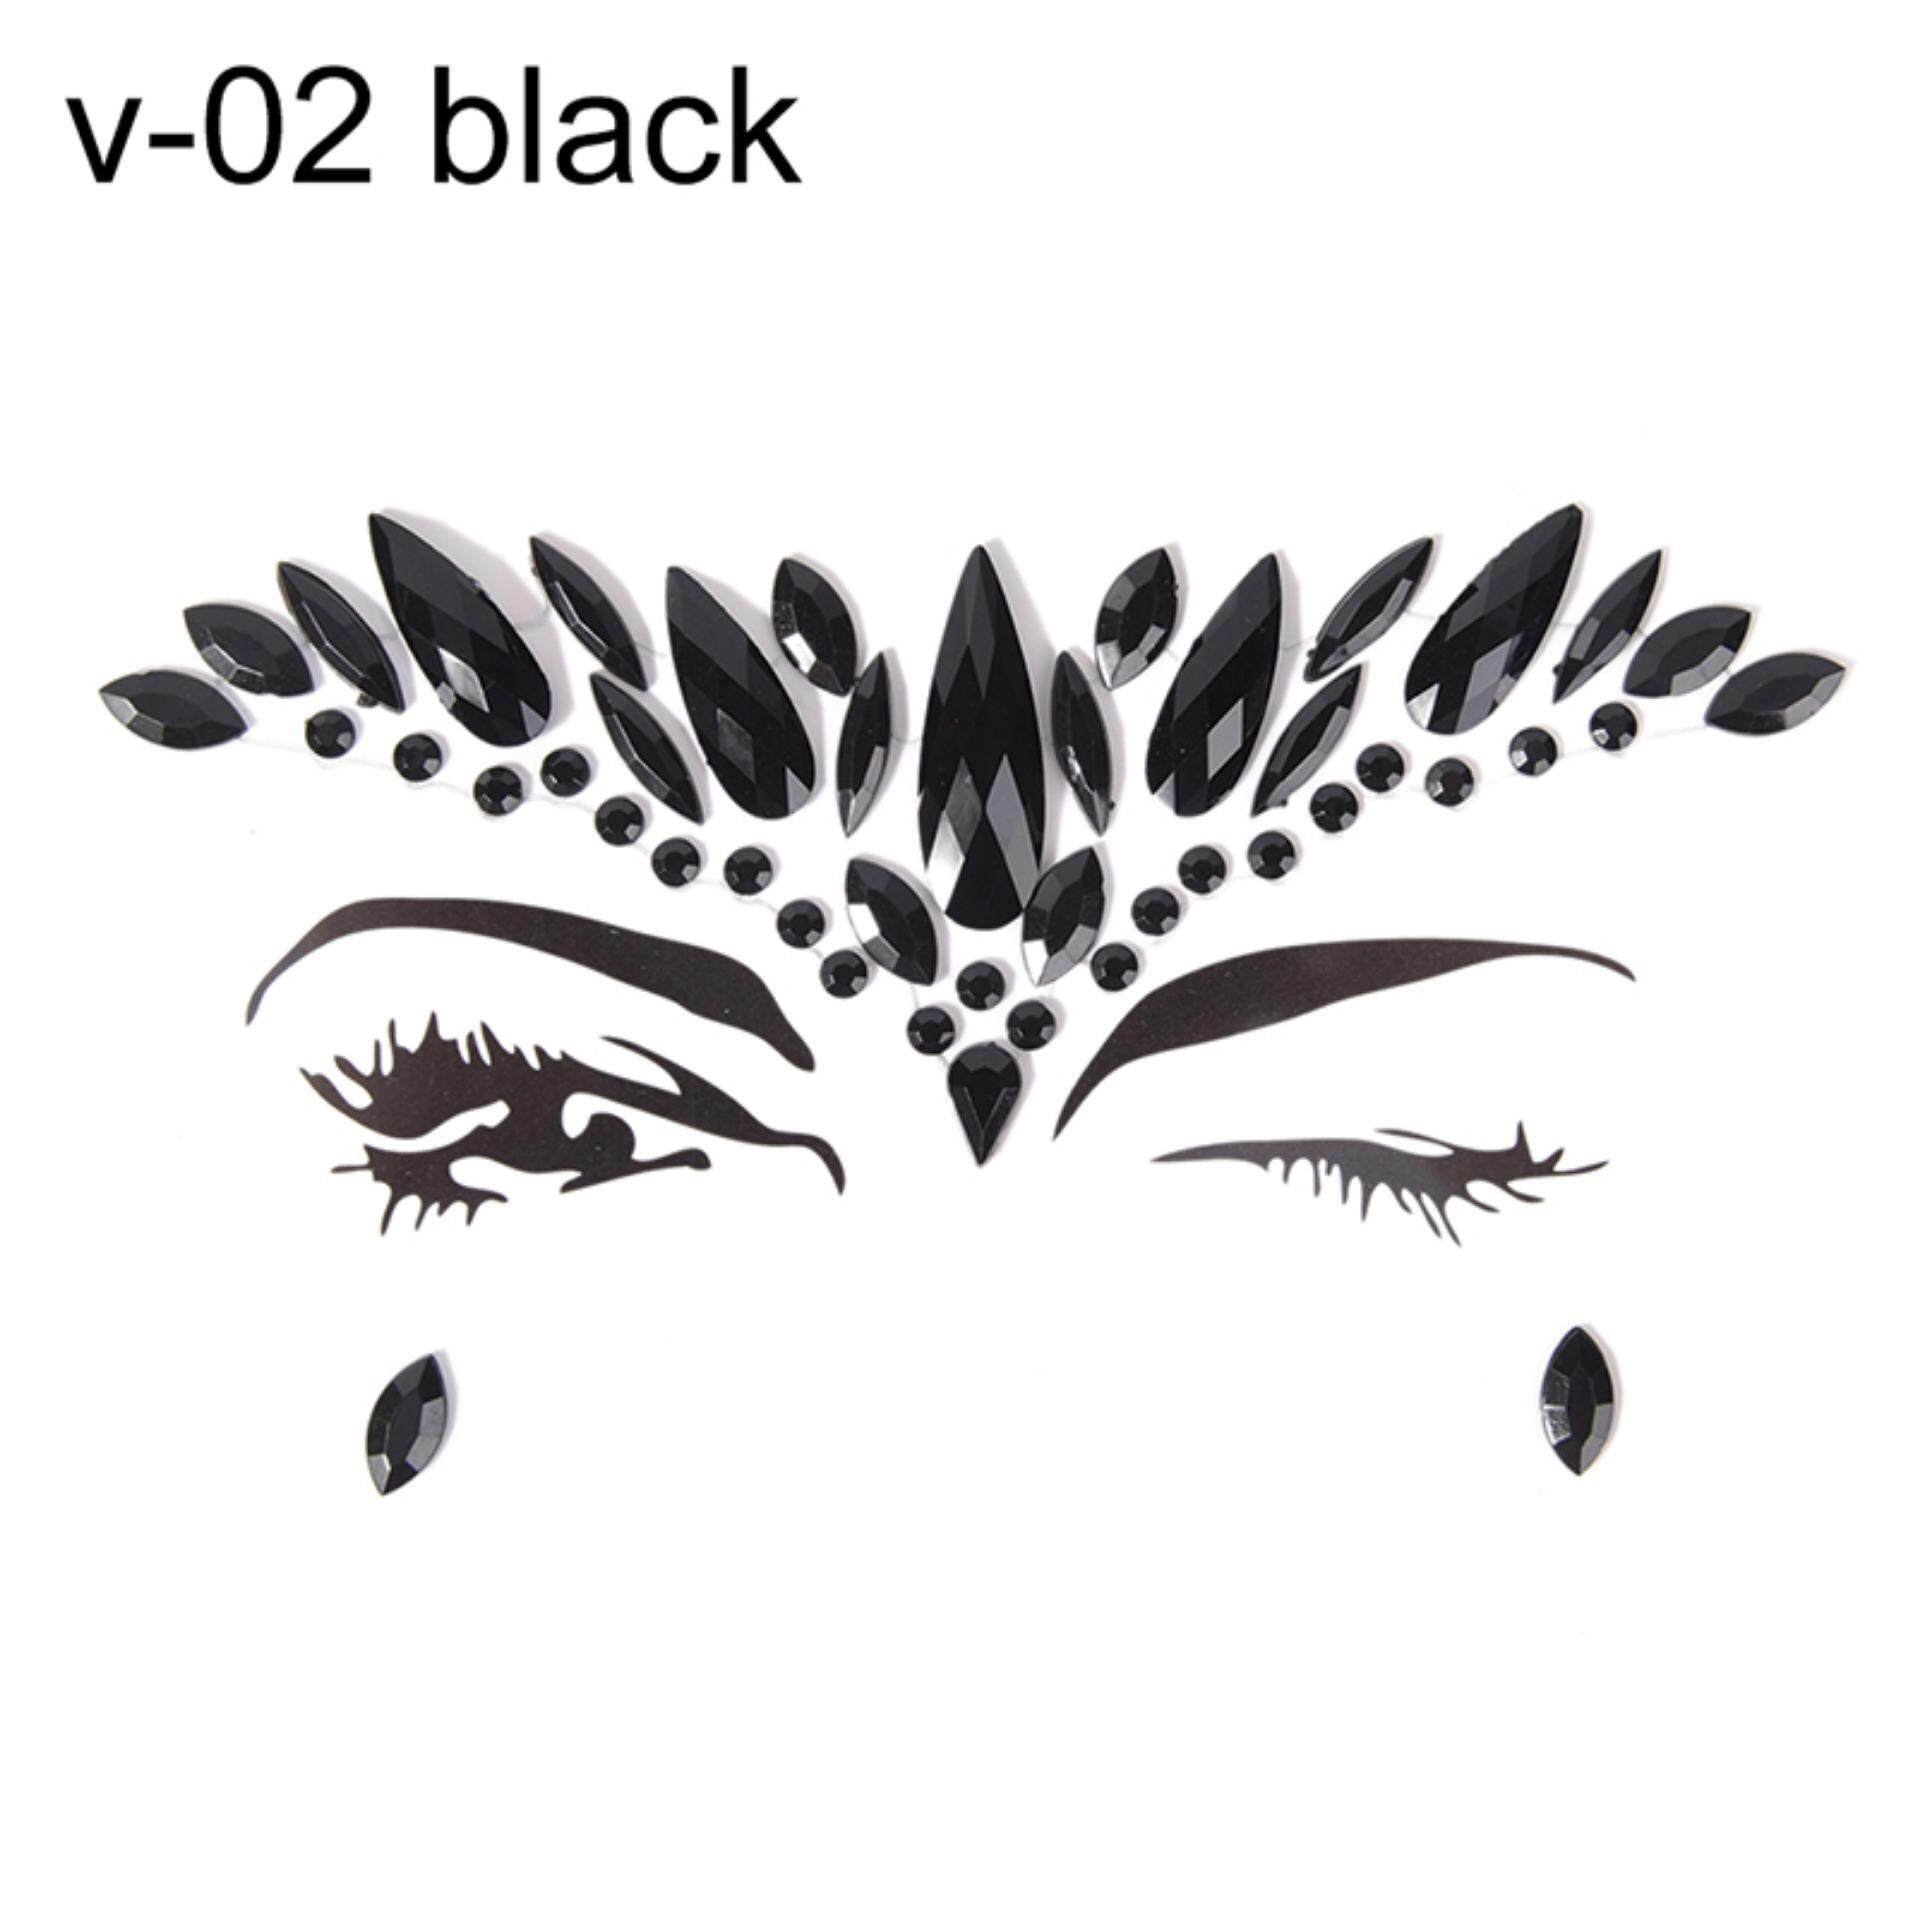 Makeup Fancy Crystal Face Body Jewels Festival Party Glitter Eye Stickers Tattoo  Color: v-02 Black